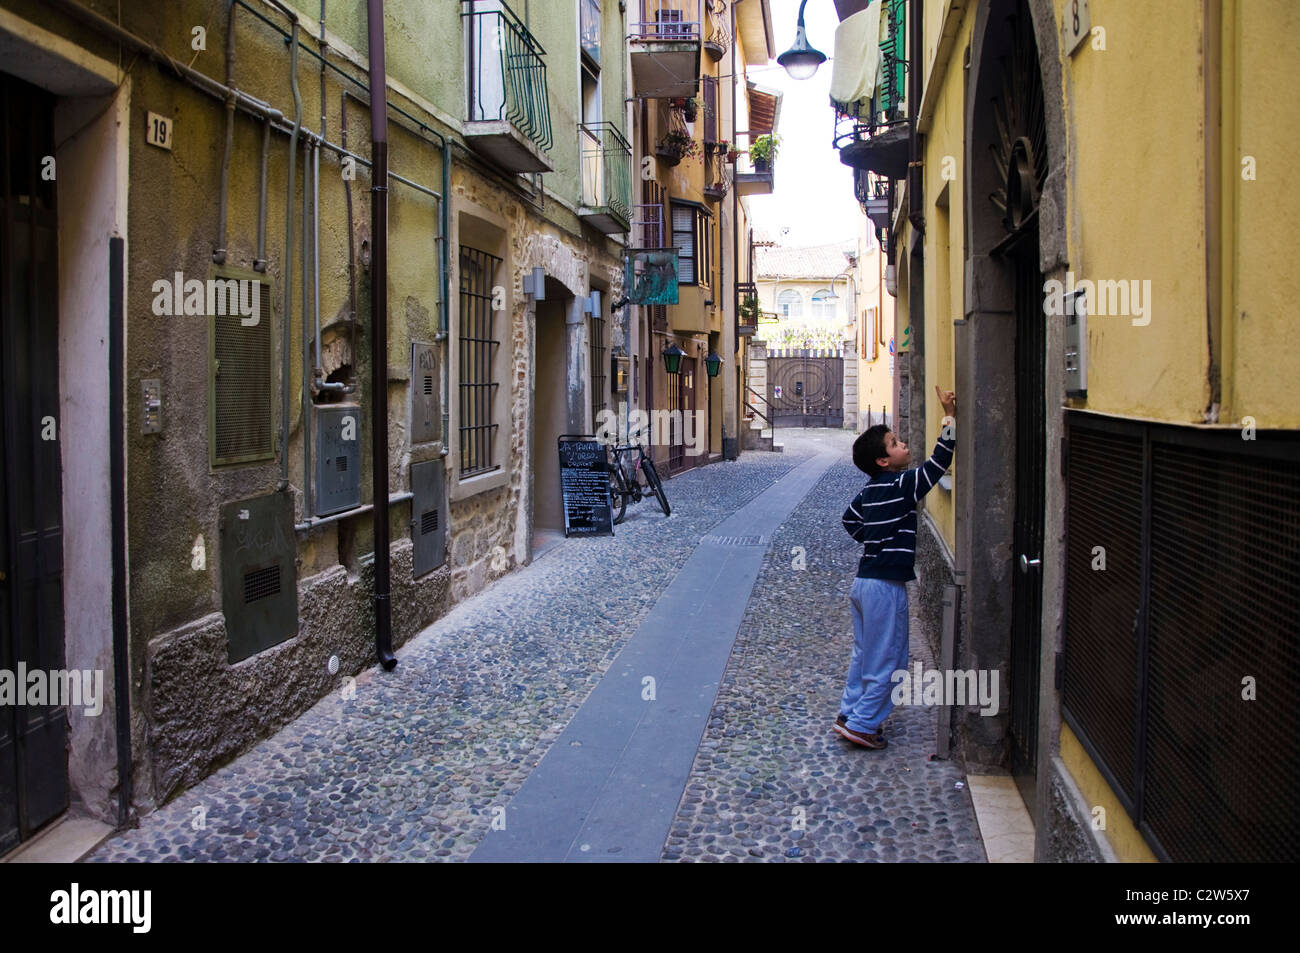 Young boy rings on a doorbell in a narrow lane in the town Iseo Lake Iseo Italy - Stock Image